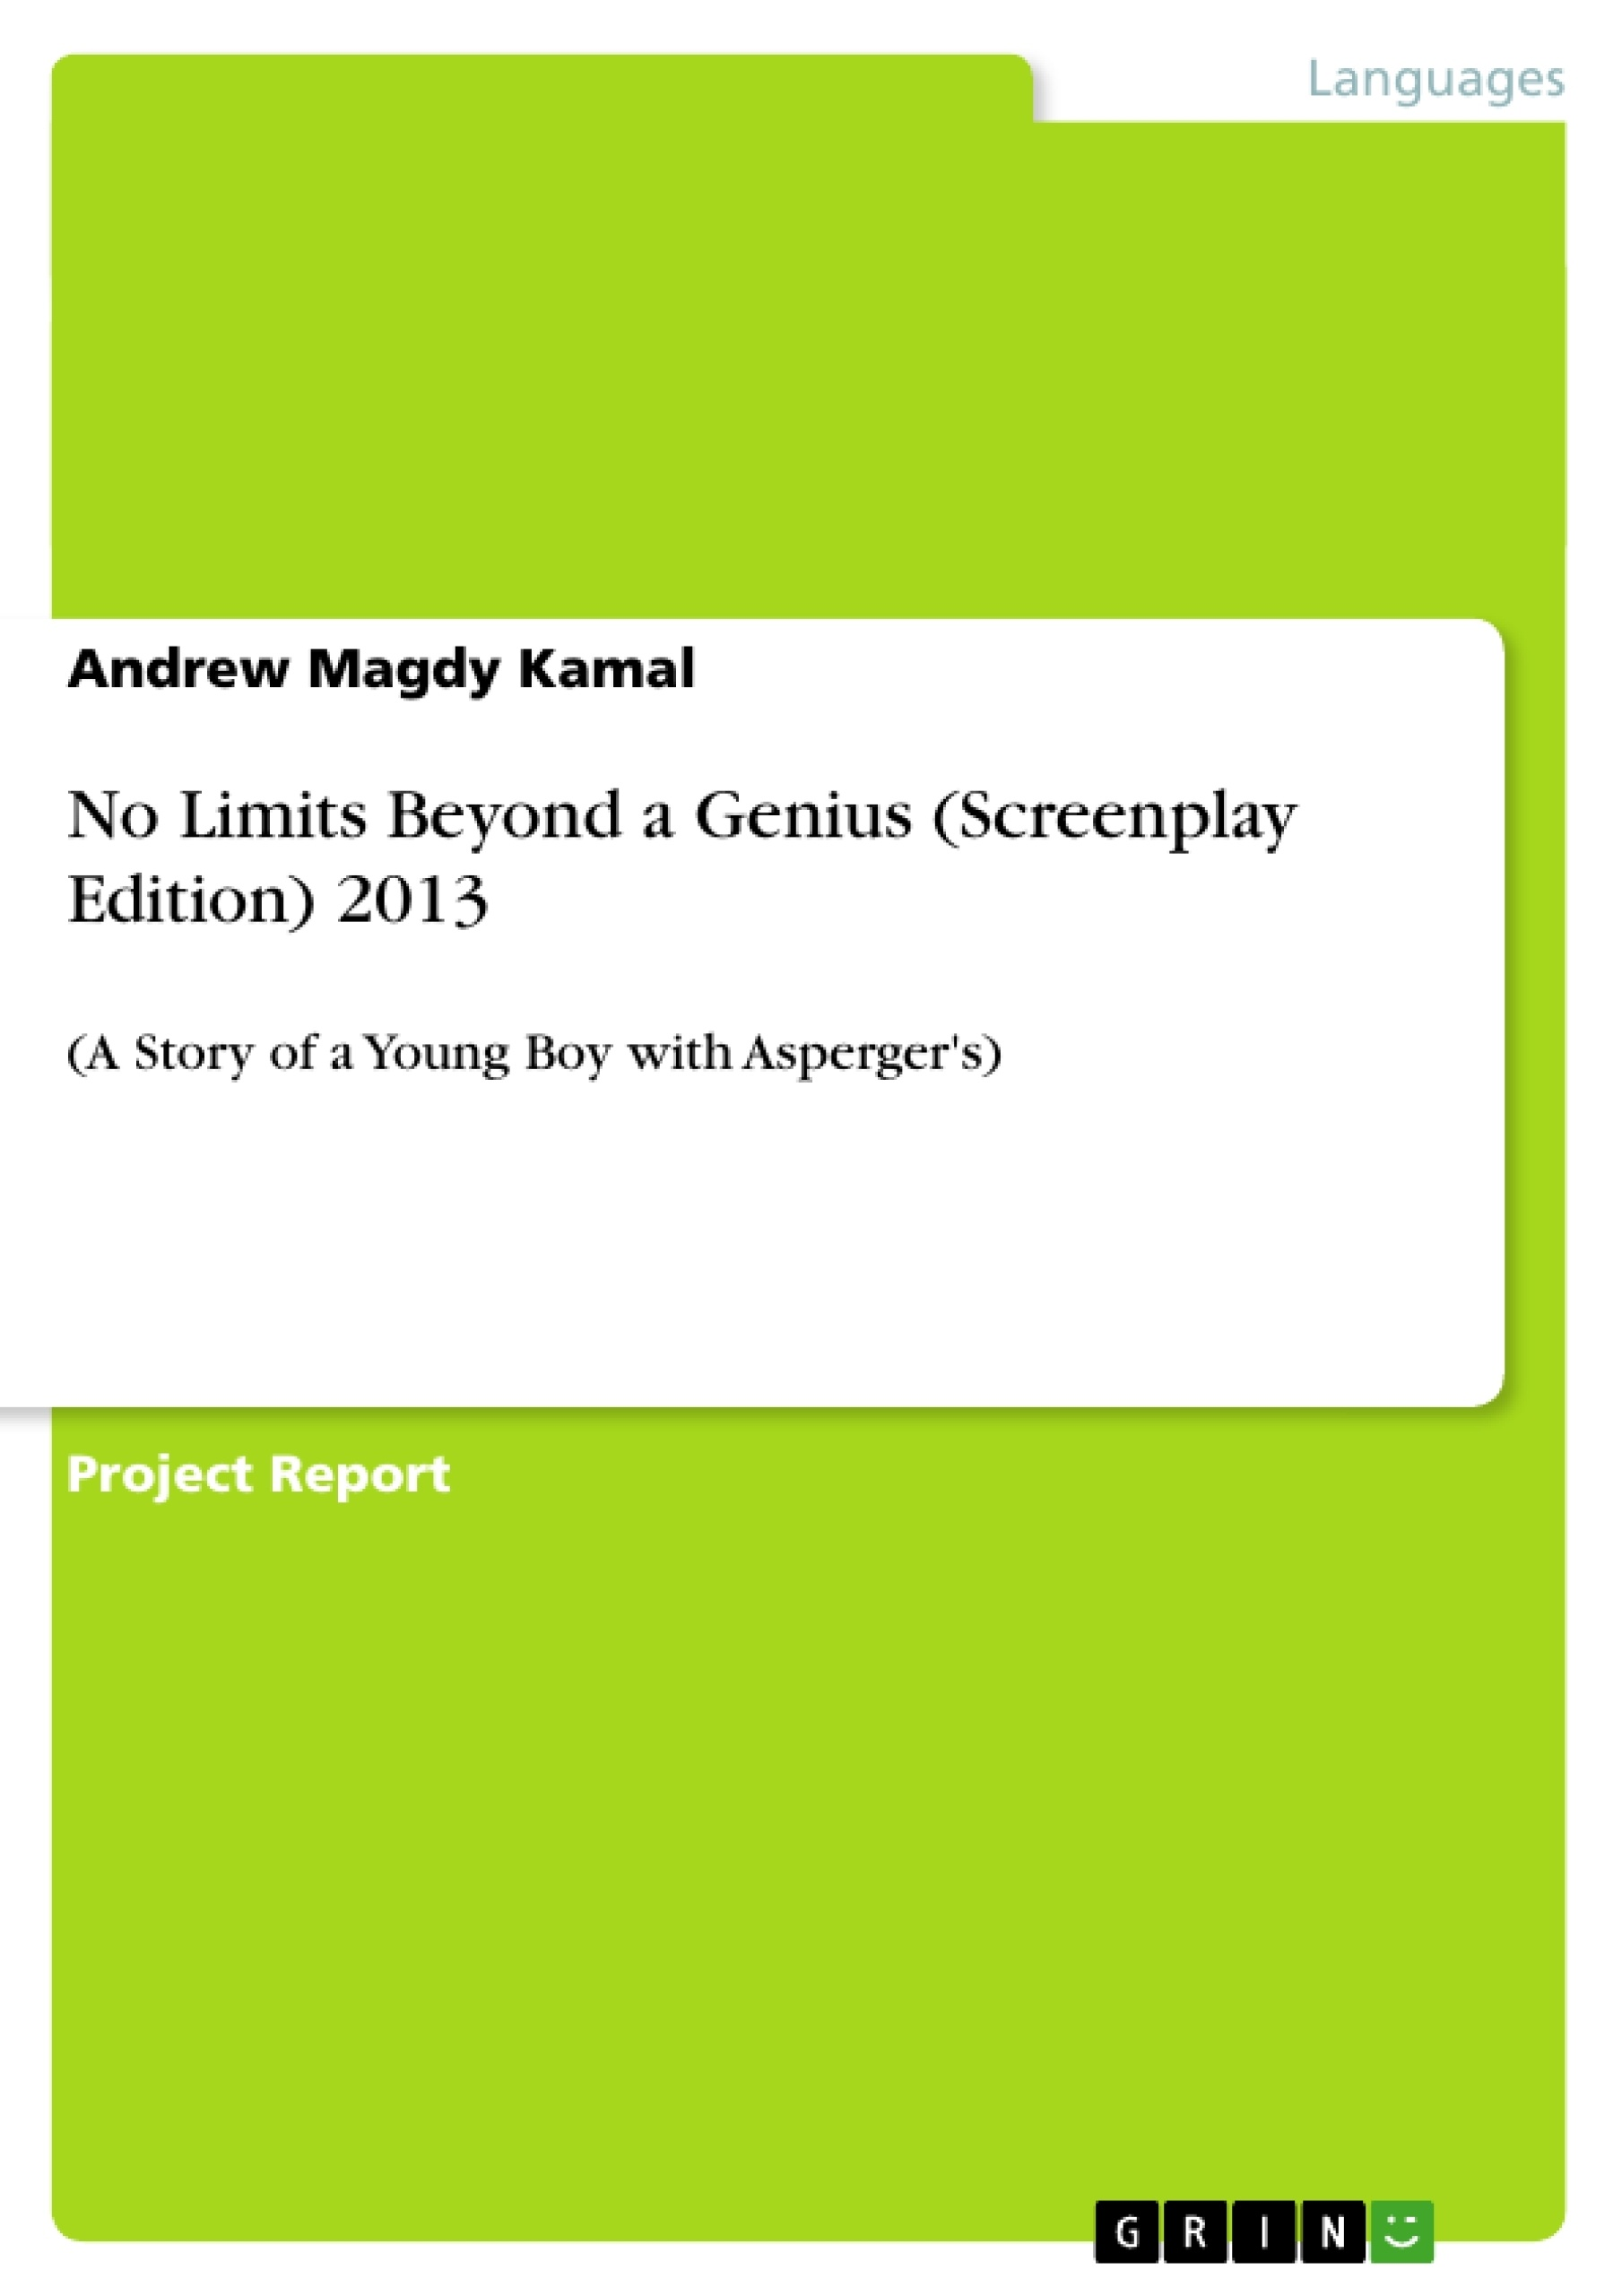 Title: No Limits Beyond a Genius (Screenplay Edition) 2013